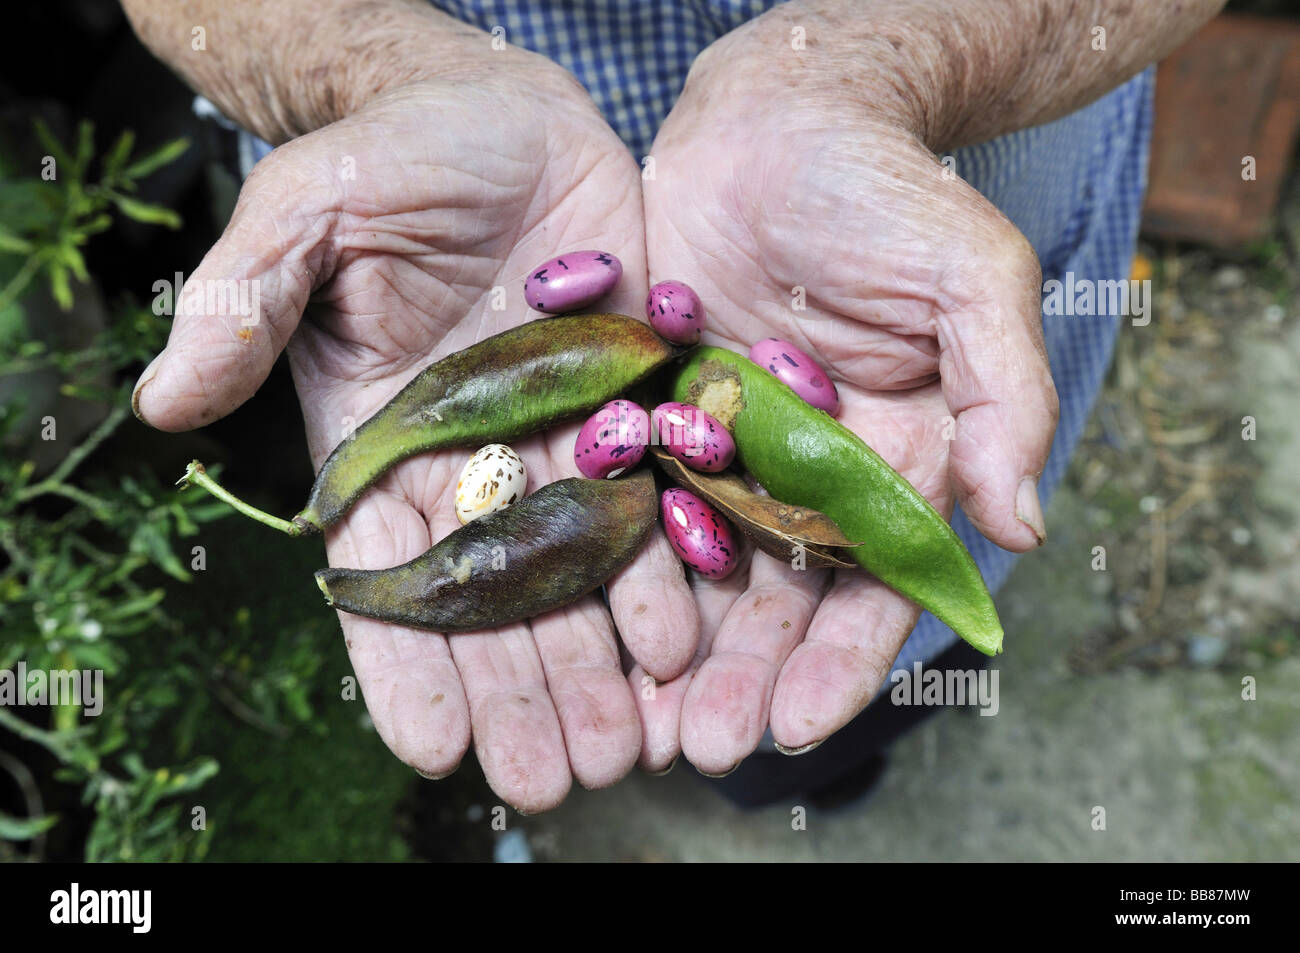 Ripe beans in the hands of an elderly woman, slums of Cerro Norte, Bogotá, Columbia - Stock Image